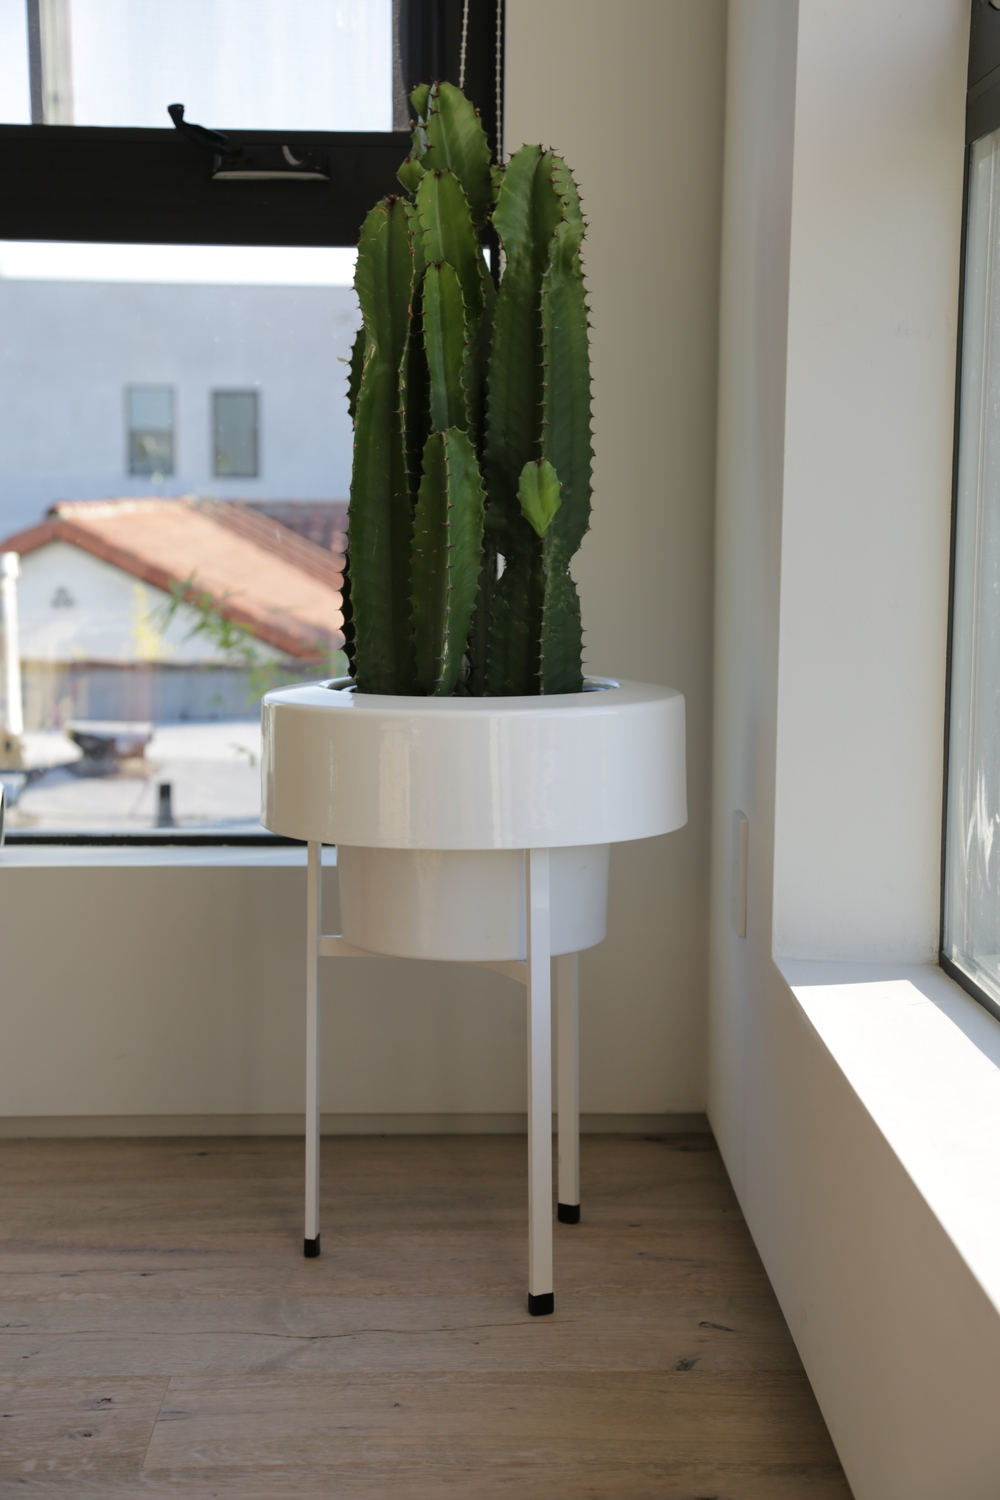 VANESSA-BELETIC-INTERIOR-PADS-MODERN-PLANTER.JPG